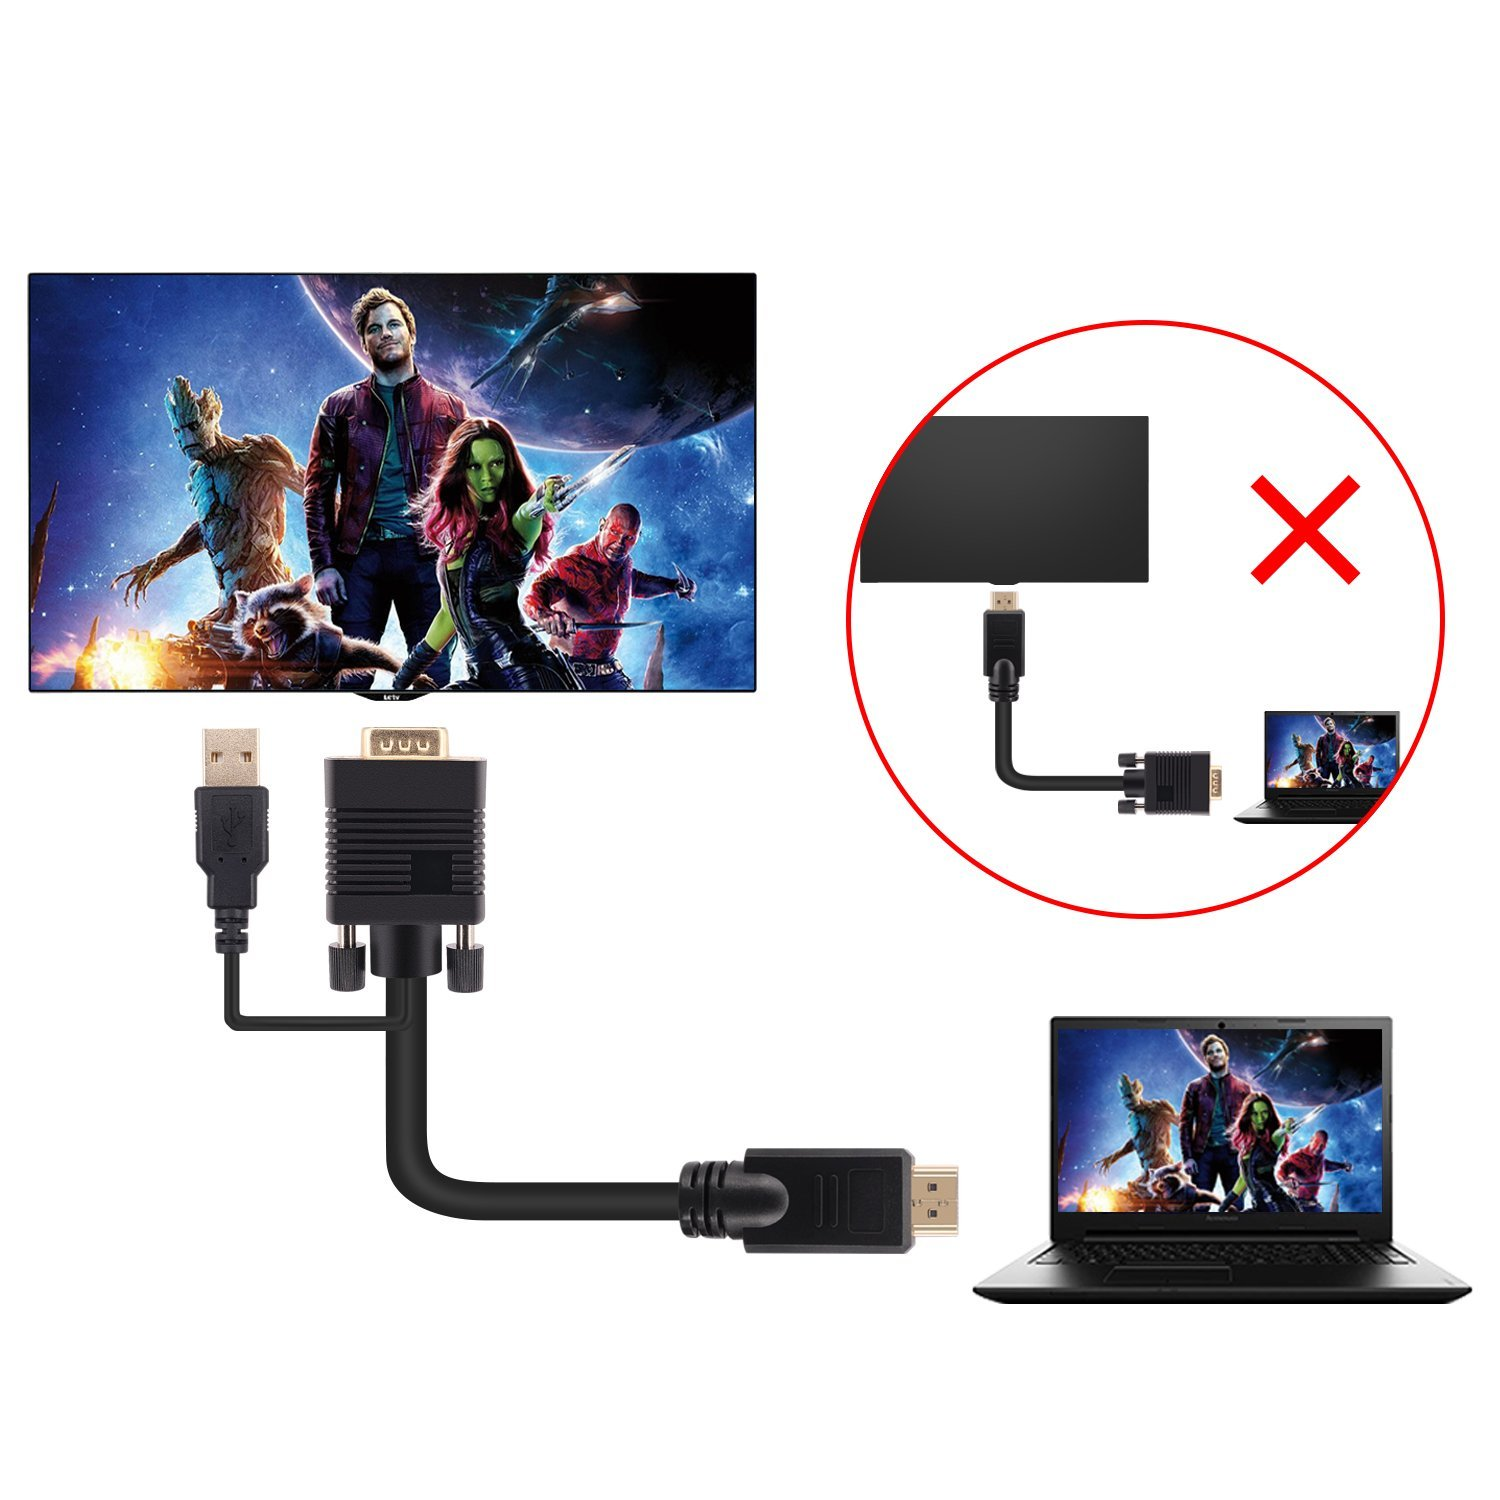 HDMI TO VGA FULL 1080P WITH USB POWER SUPPLY